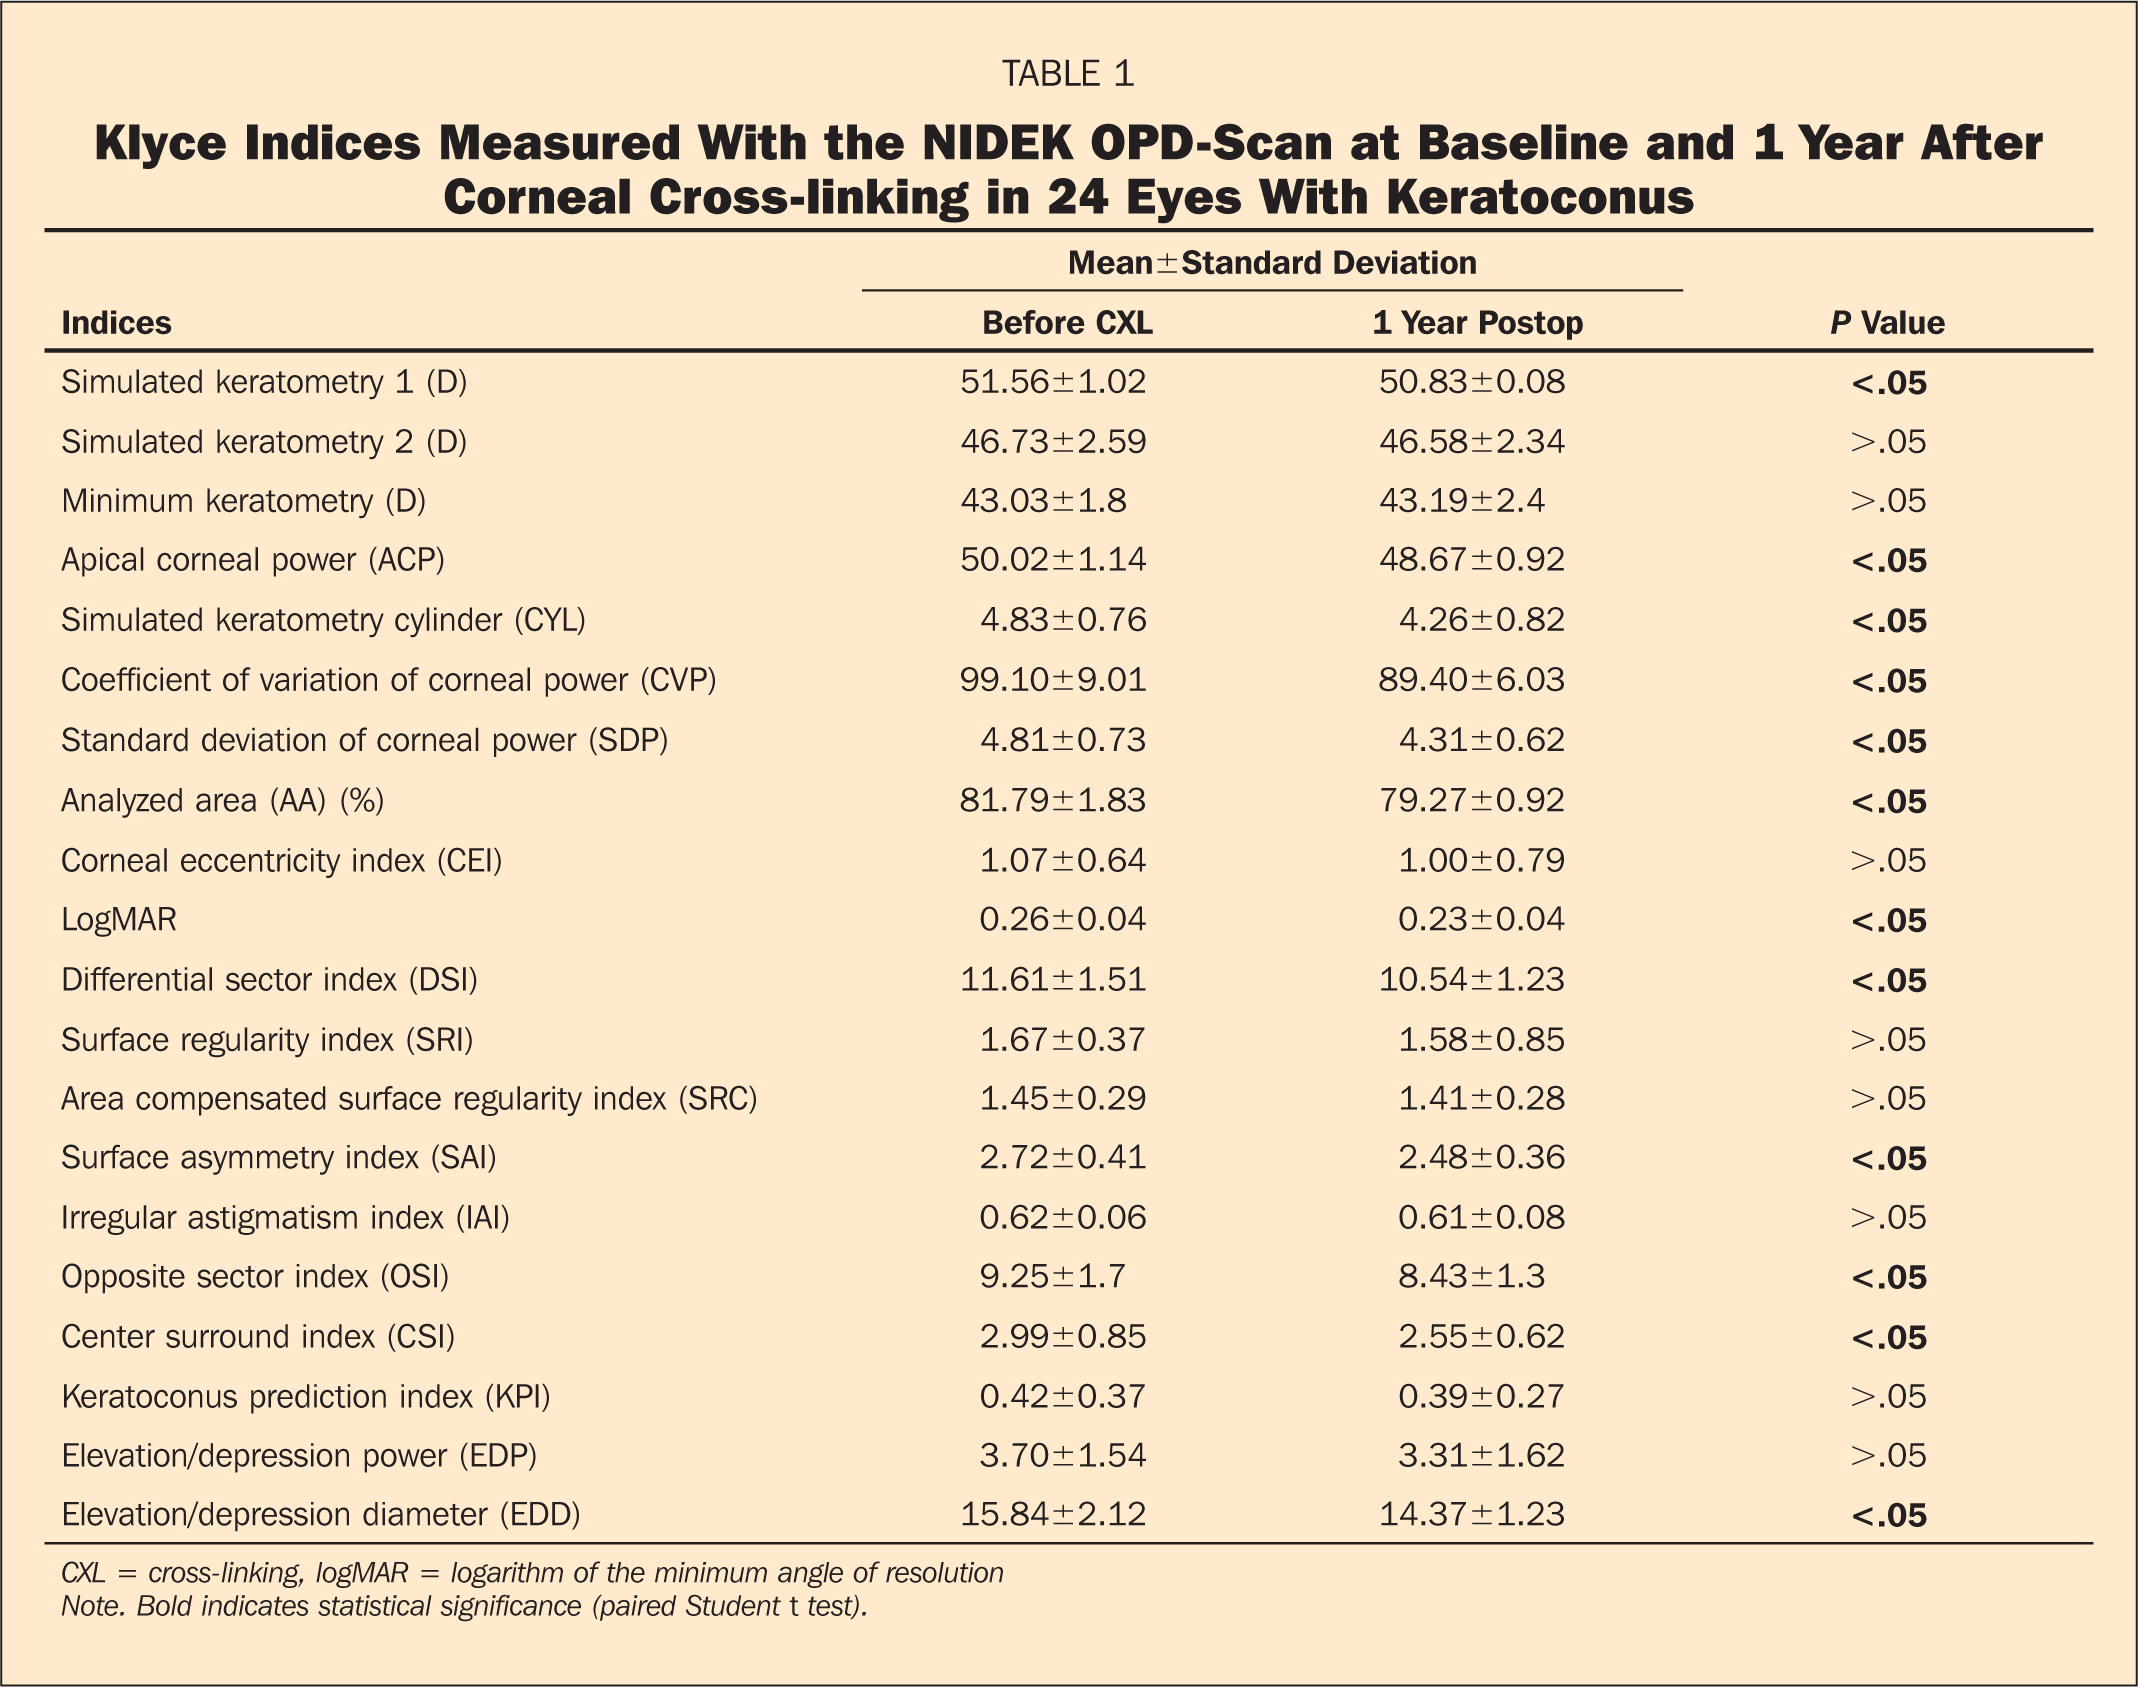 Klyce Indices Measured with the NIDEK OPD-Scan at Baseline and 1 Year After Corneal Cross-Linking in 24 Eyes with Keratoconus